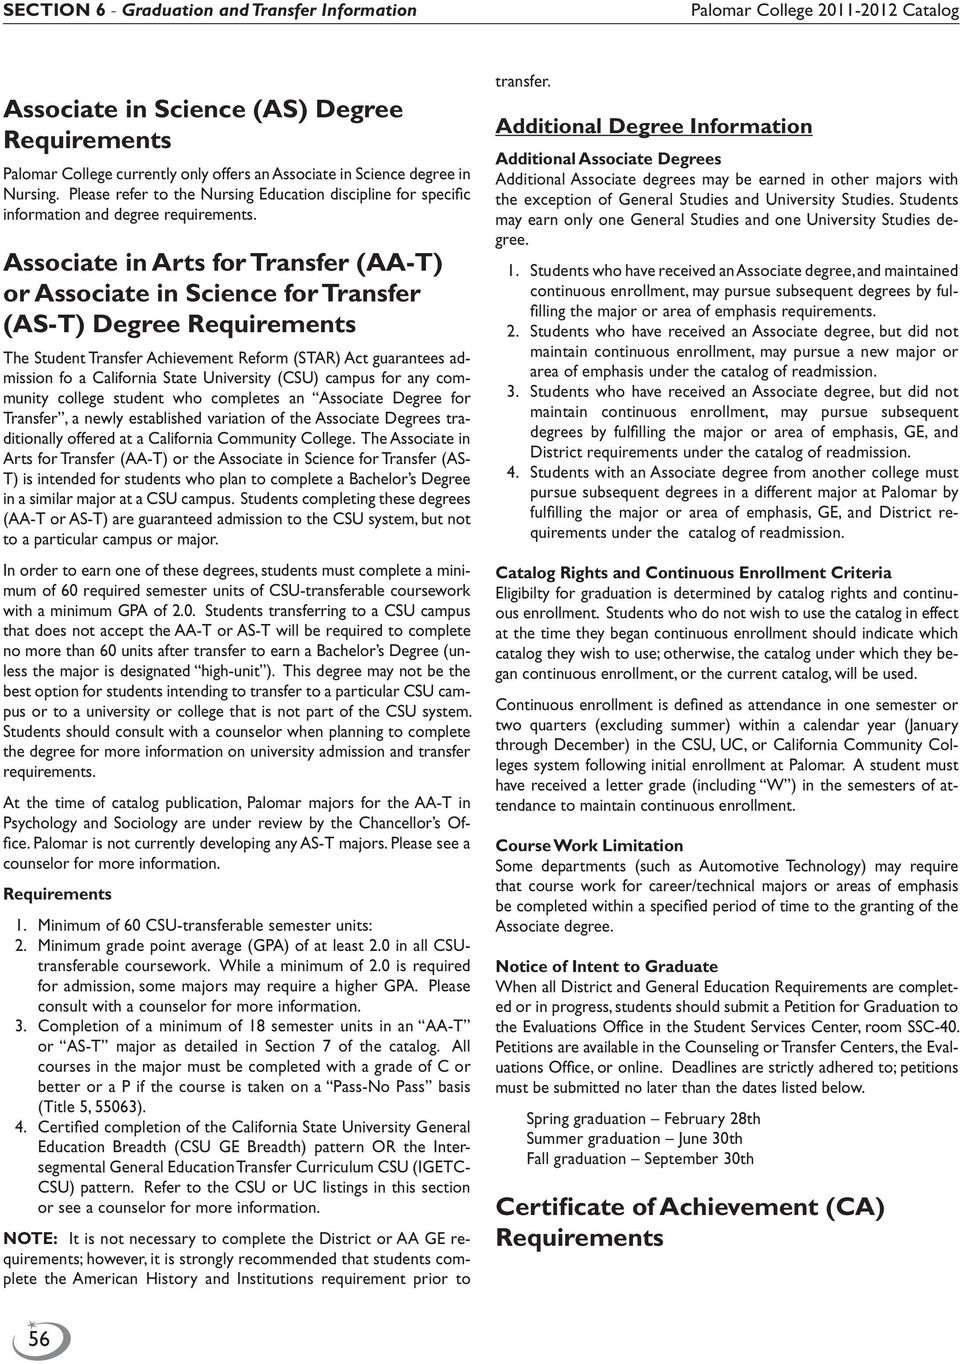 Associate in Arts for Transfer (AA-T) or Associate in Science for Transfer (AS-T) Degree The Student Transfer Achievement Reform (STAR) Act guarantees admission fo a California State University (CSU)